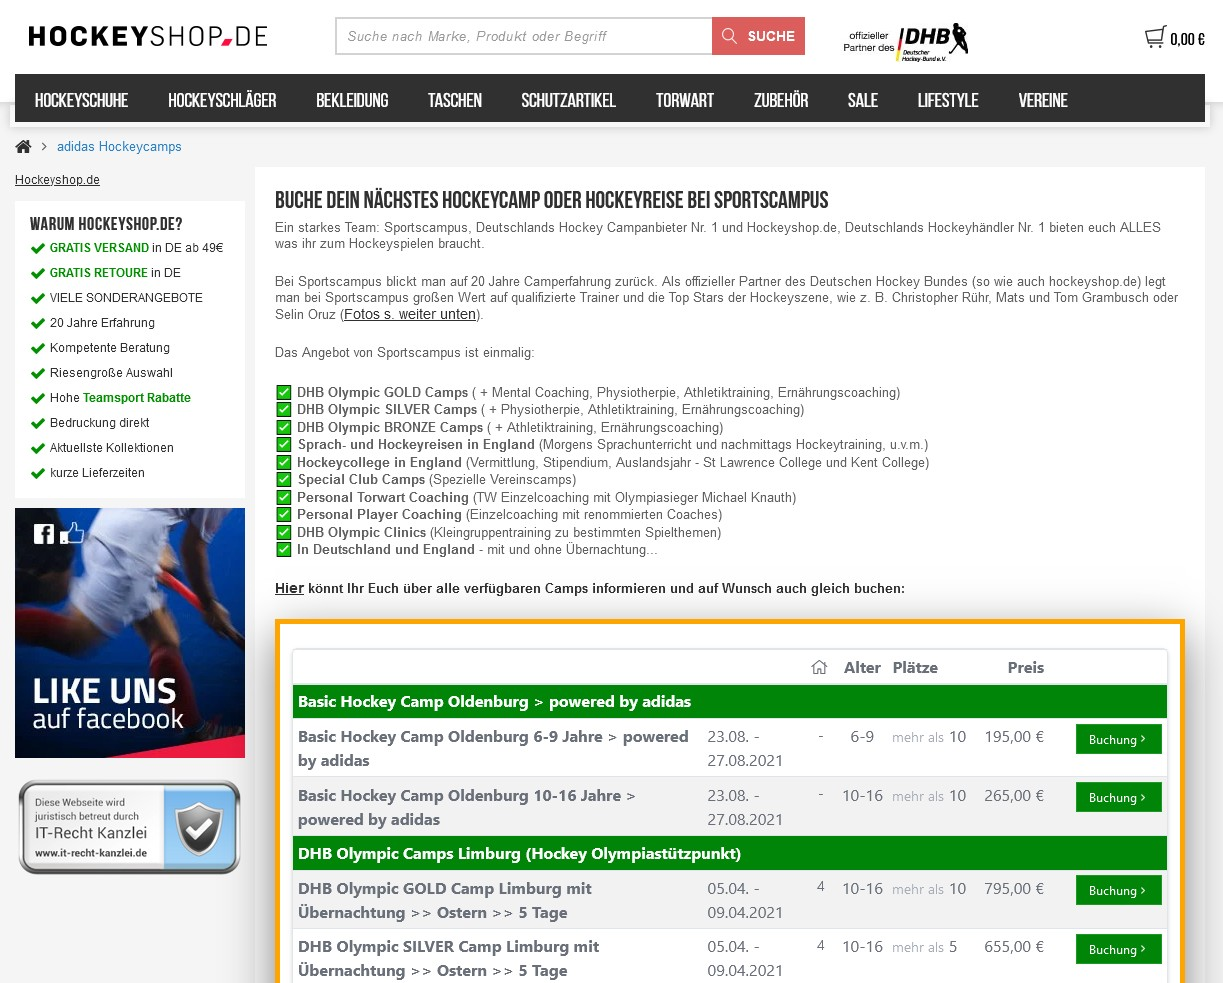 screenshot hockeyshop